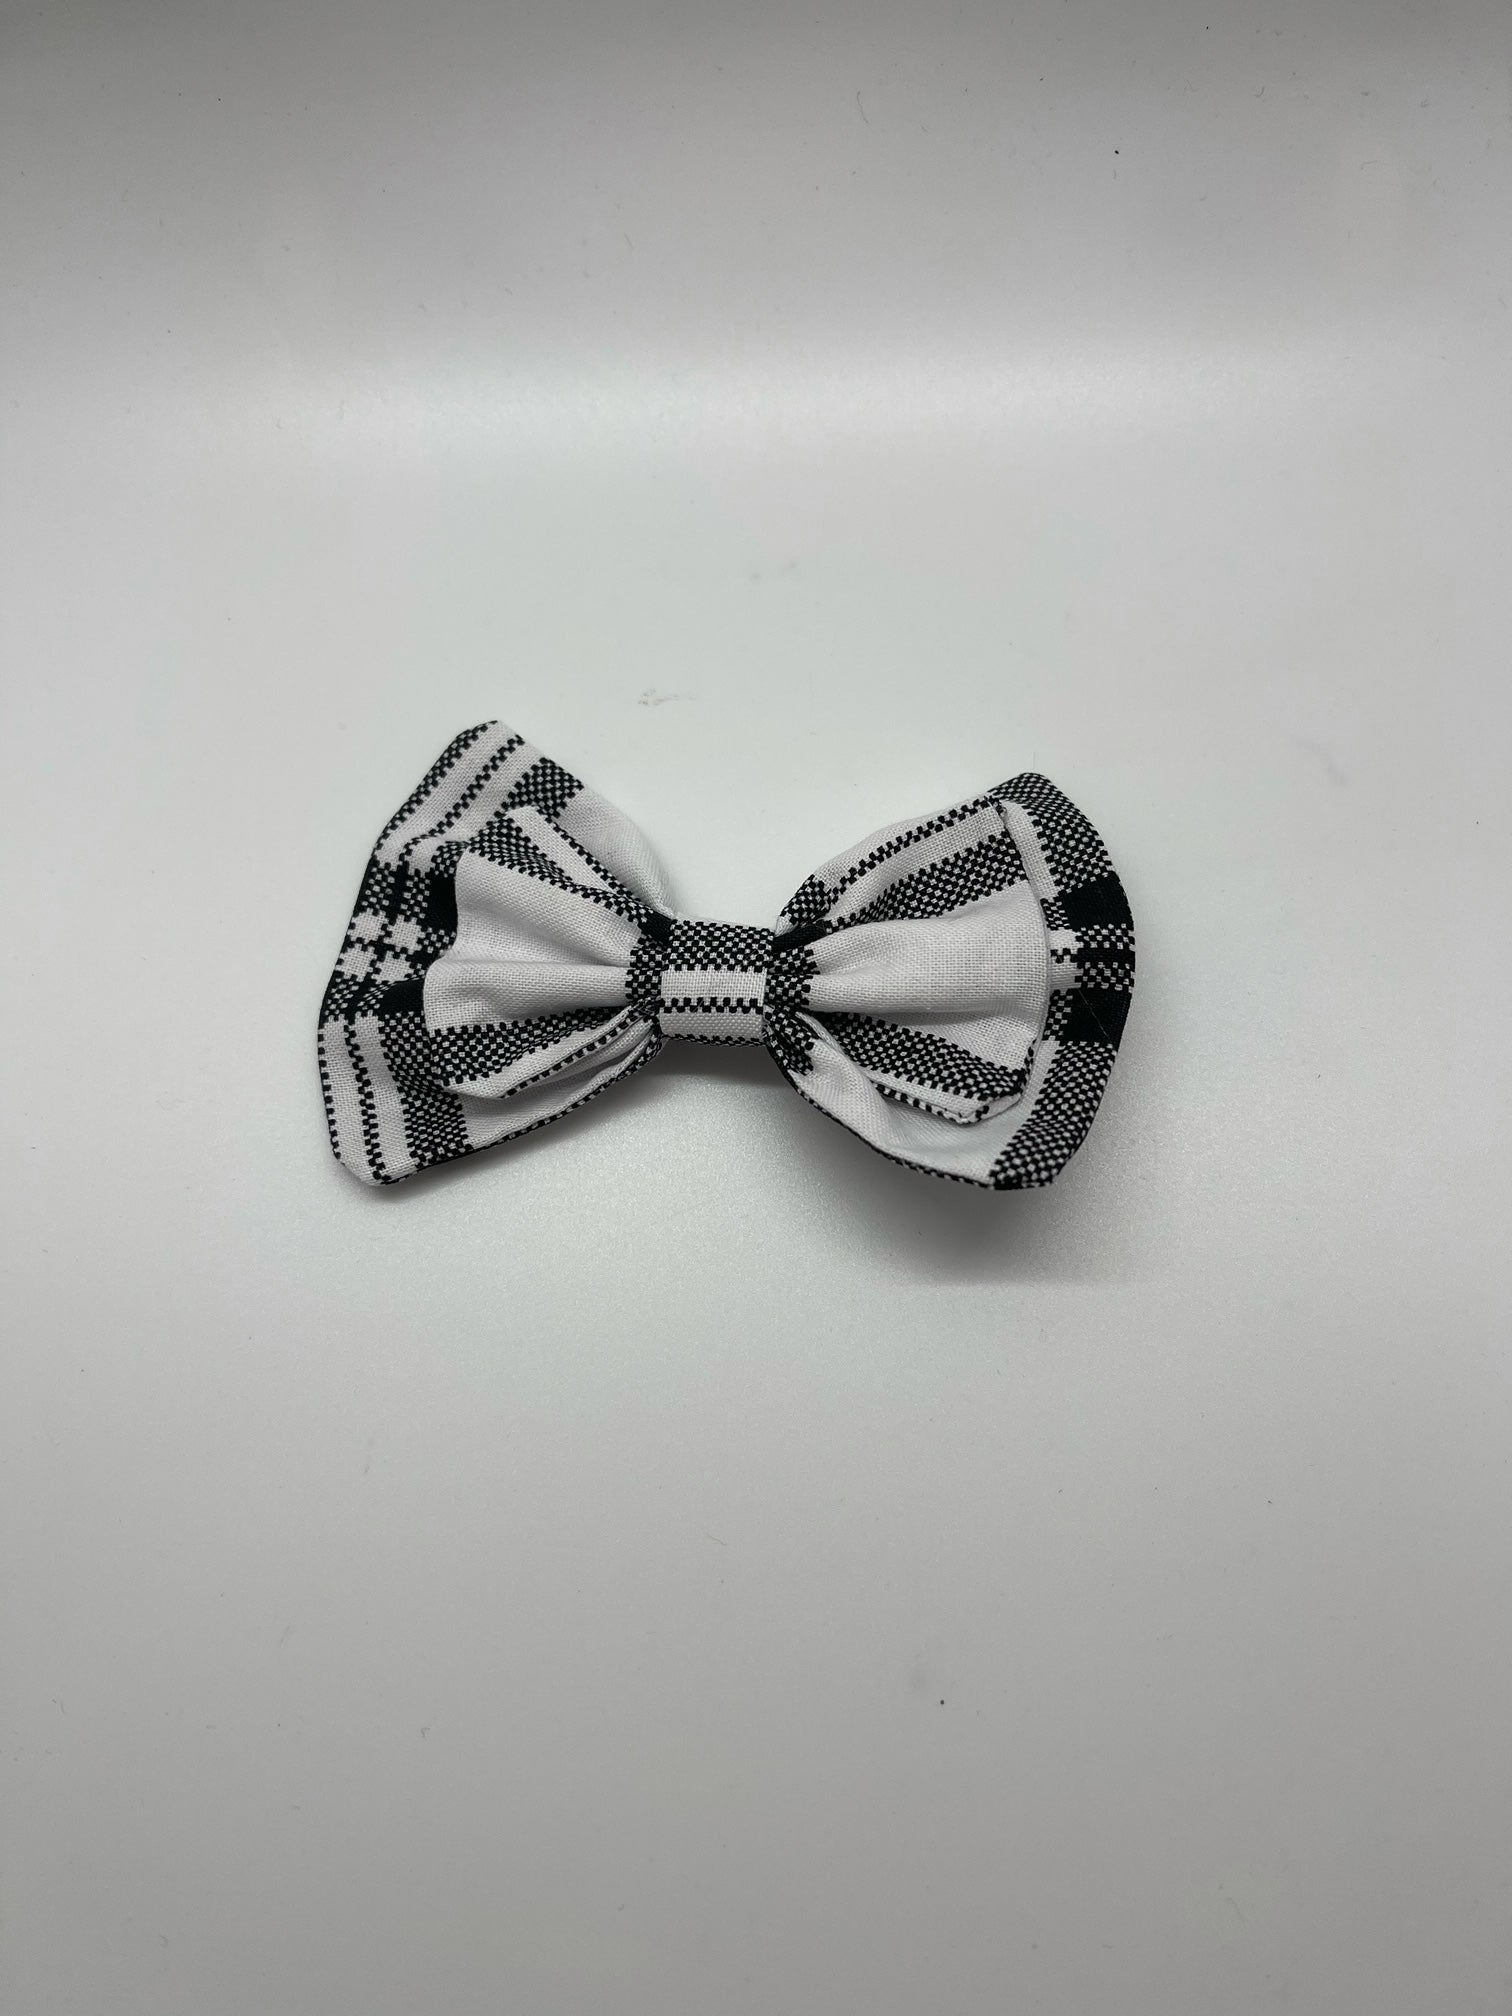 WALNUT STREET TREASURES - BLACK/WHITE PLAID